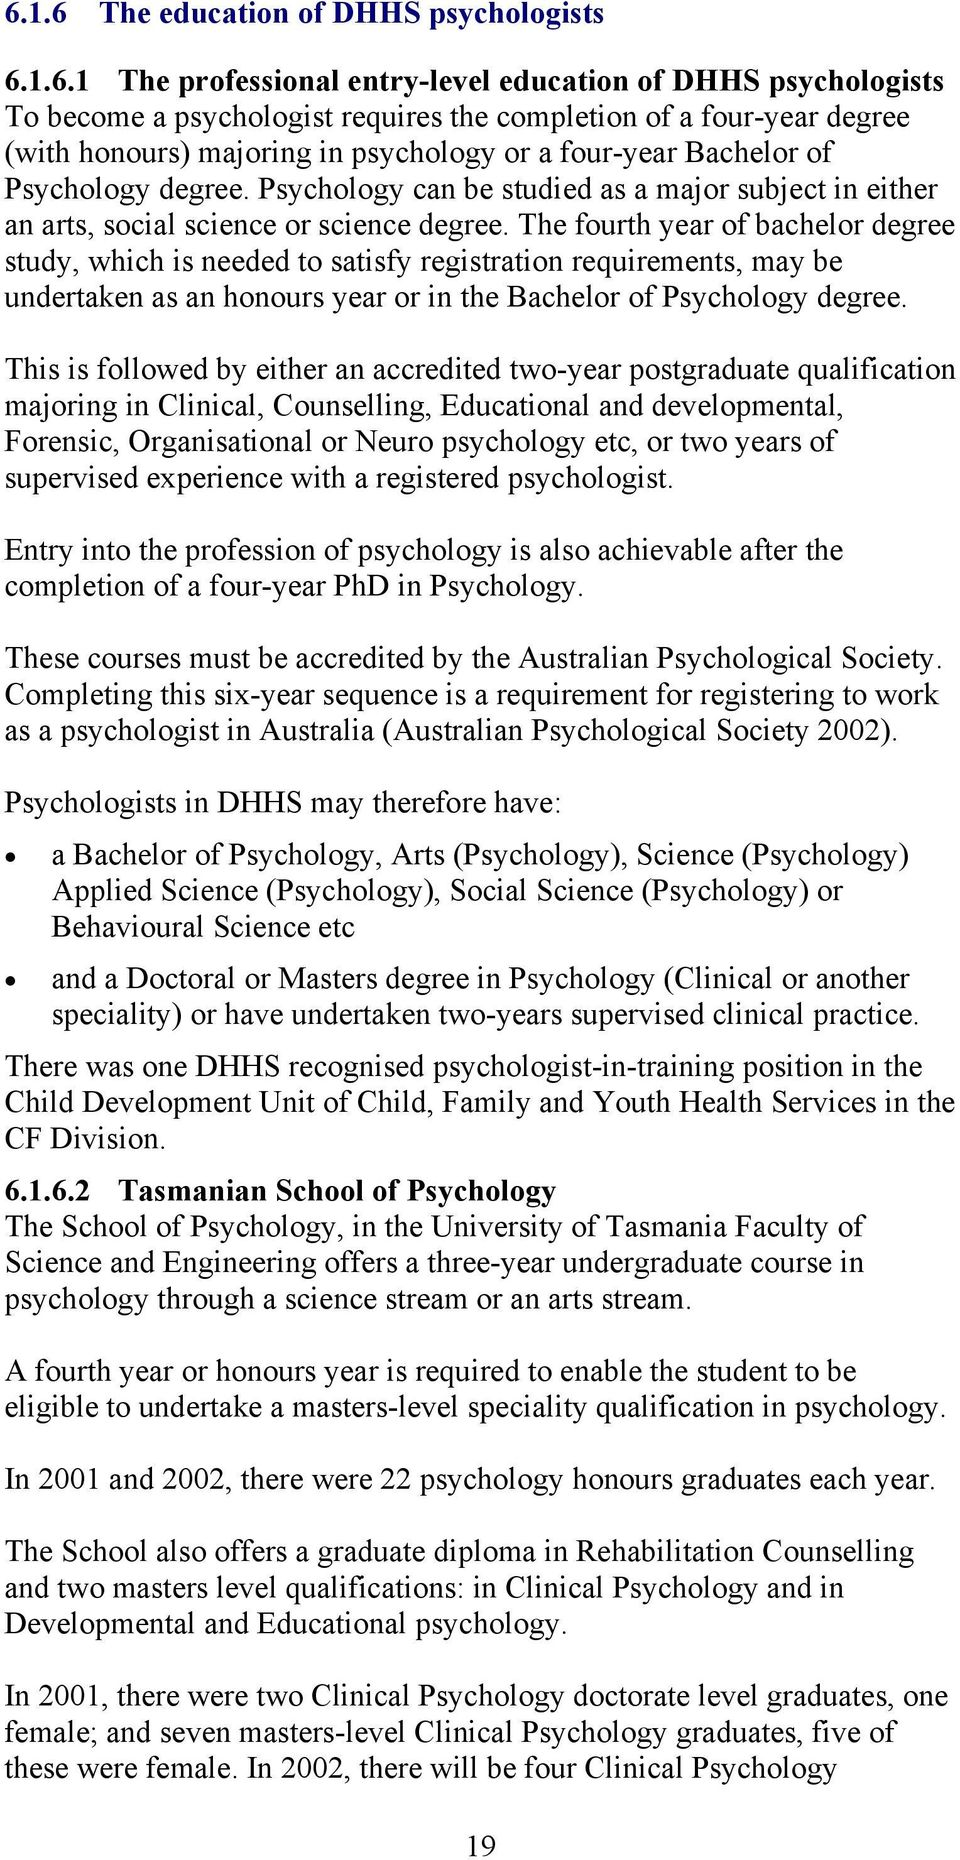 The fourth year of bachelor degree study, which is needed to satisfy registration requirements, may be undertaken as an honours year or in the Bachelor of Psychology degree.